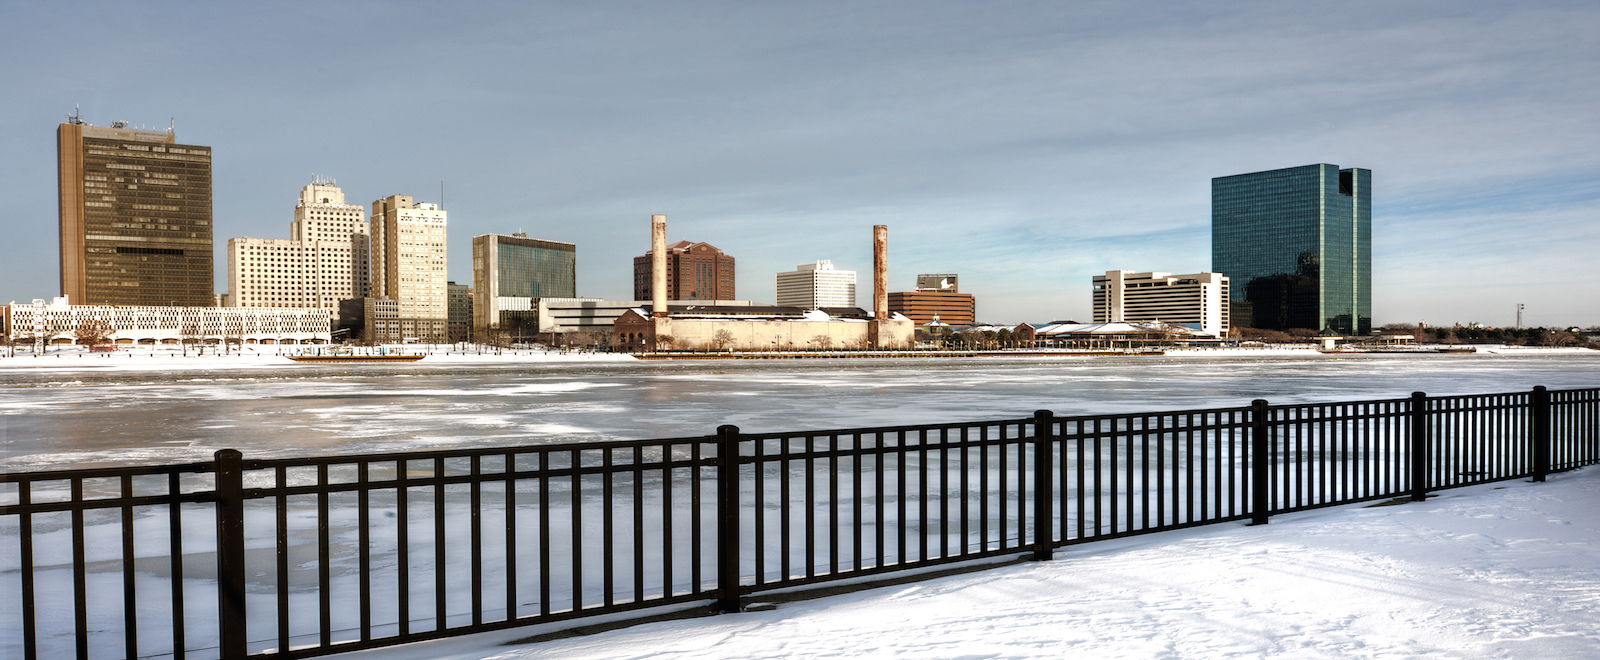 Toledo Homes for Sale and Toledo Real Estate